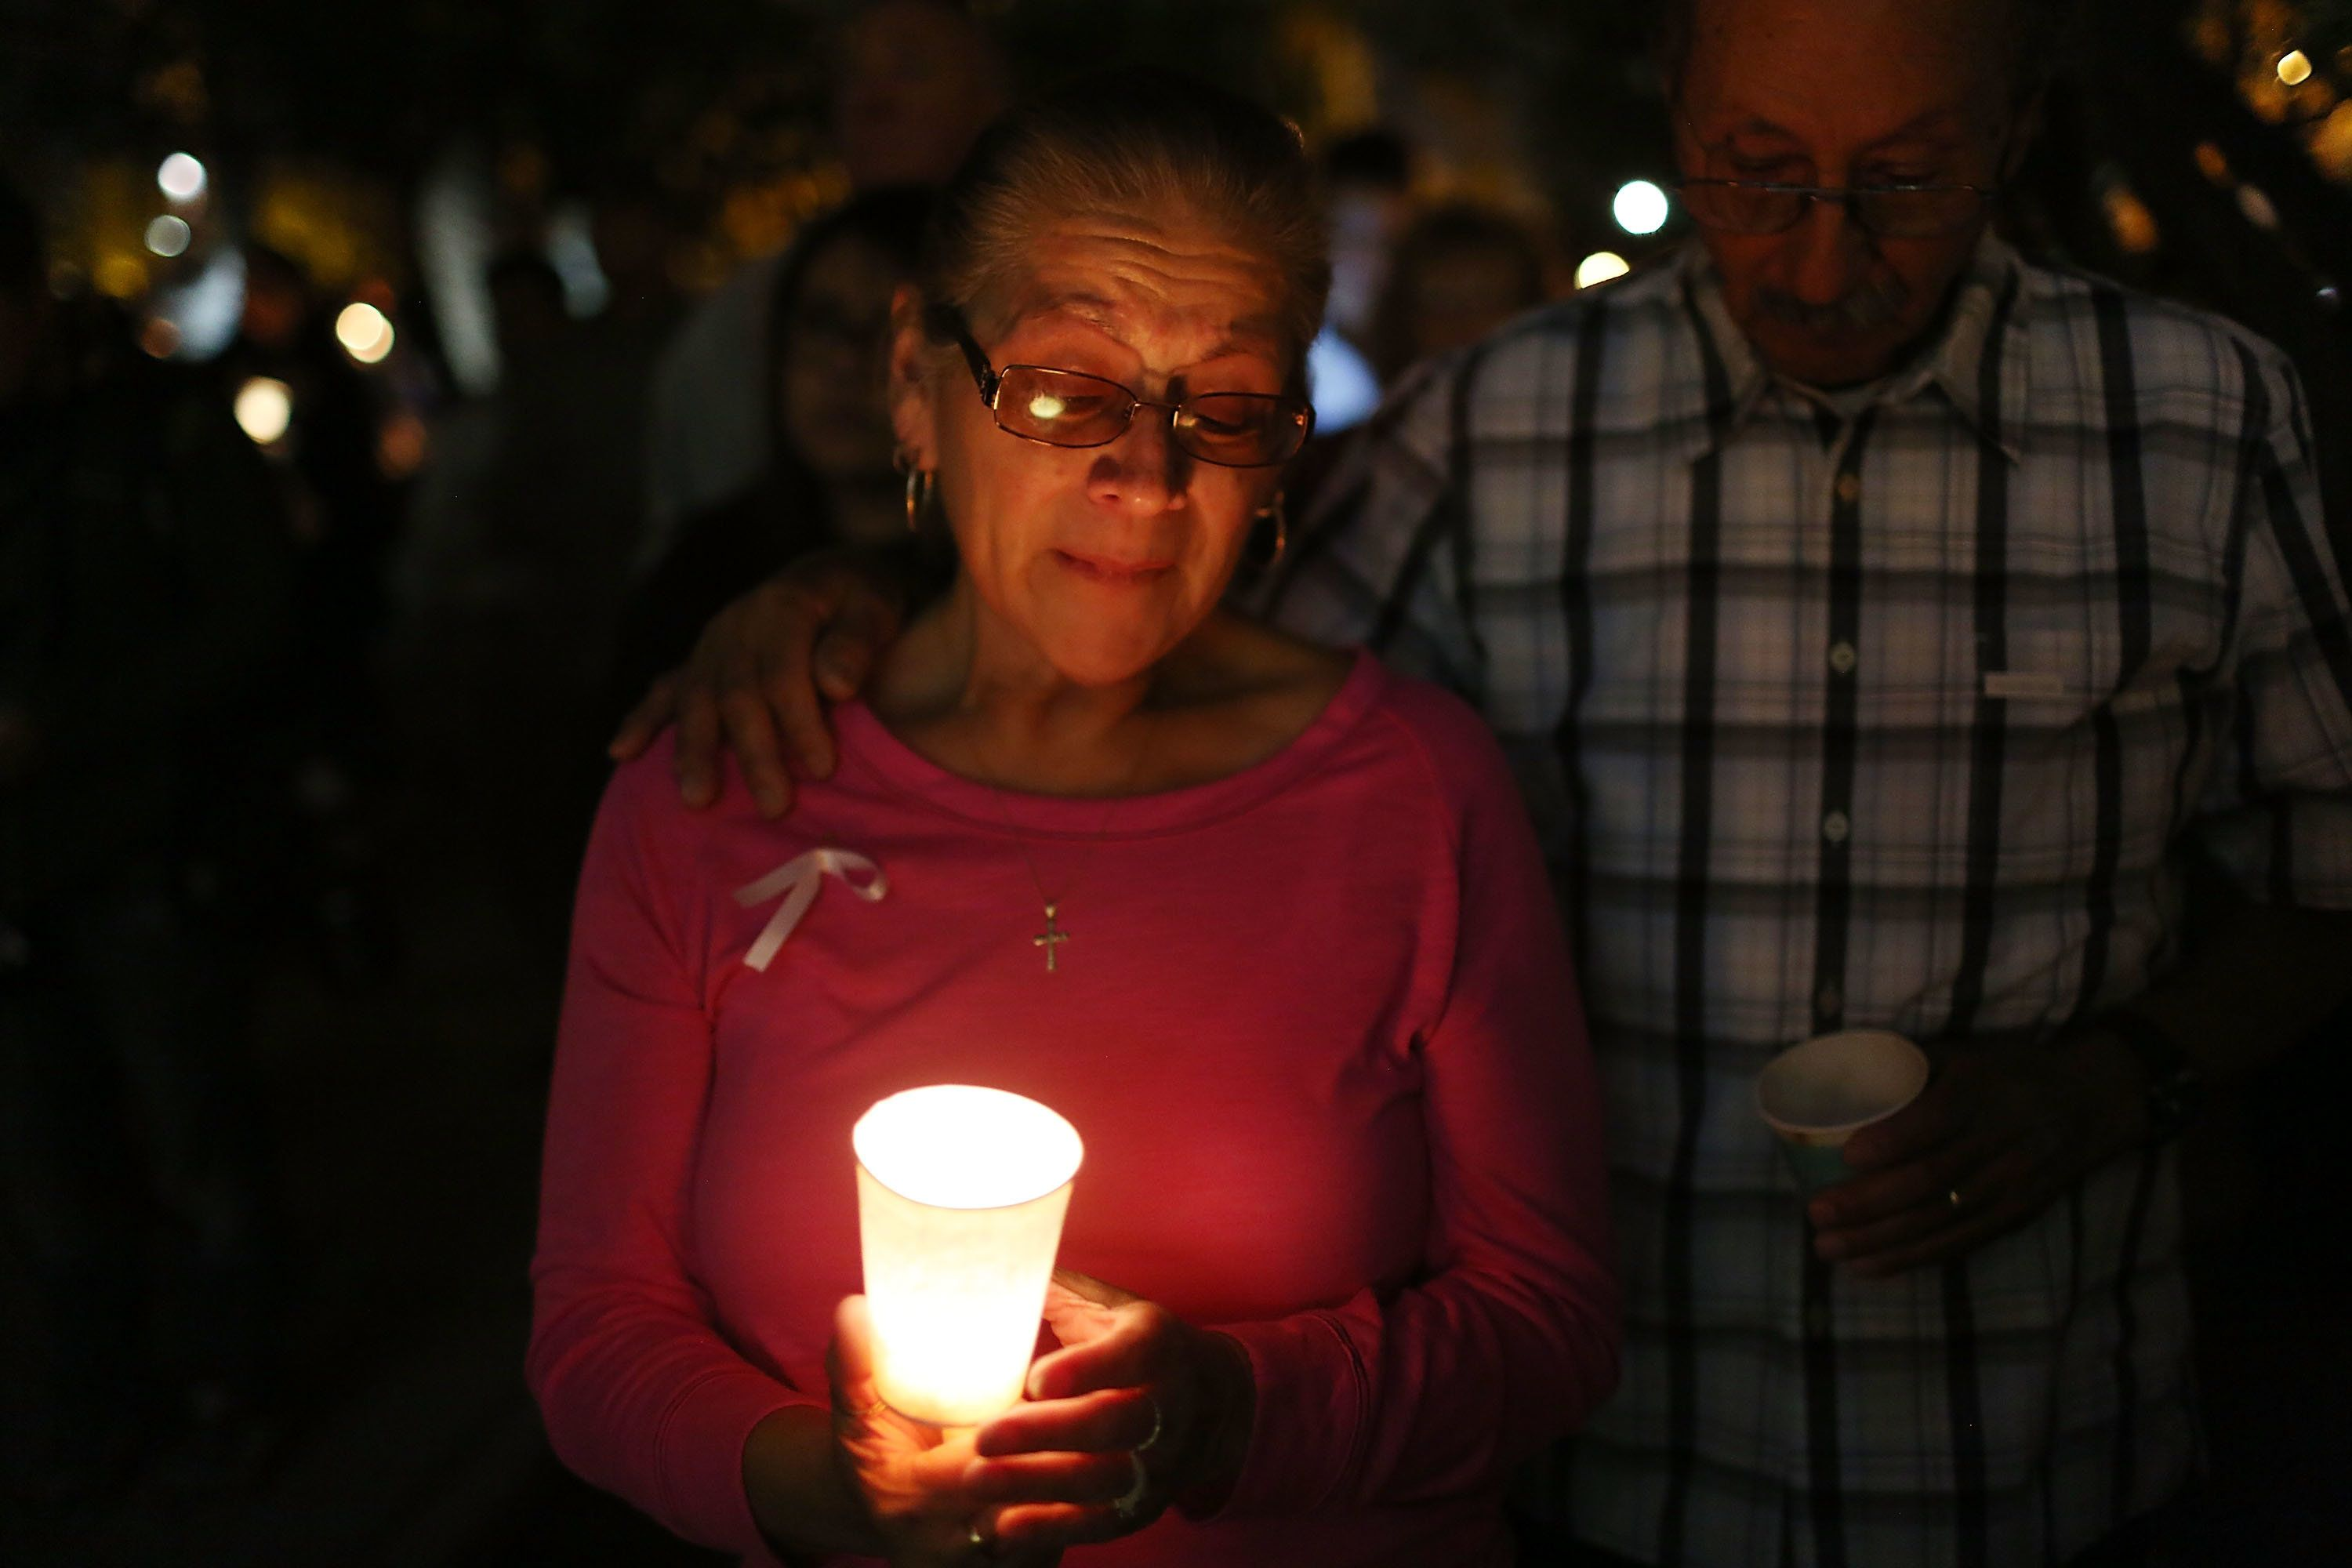 SAN BERNARDINO, CA - DECEMBER 07:  Arlene Payan and Ralph Payan (R)  attend a vigil held at the San Bernardino County Board of Supervisors headquarters to remember those injured and killed during the shooting at the Inland Regional Center on December 7, 2015 in San Bernardino, California. FBI and other law enforcement officials continue to investigate the mass shooting that left 14 people dead and another 21 injured on December 2.  (Photo by Joe Raedle/Getty Images)